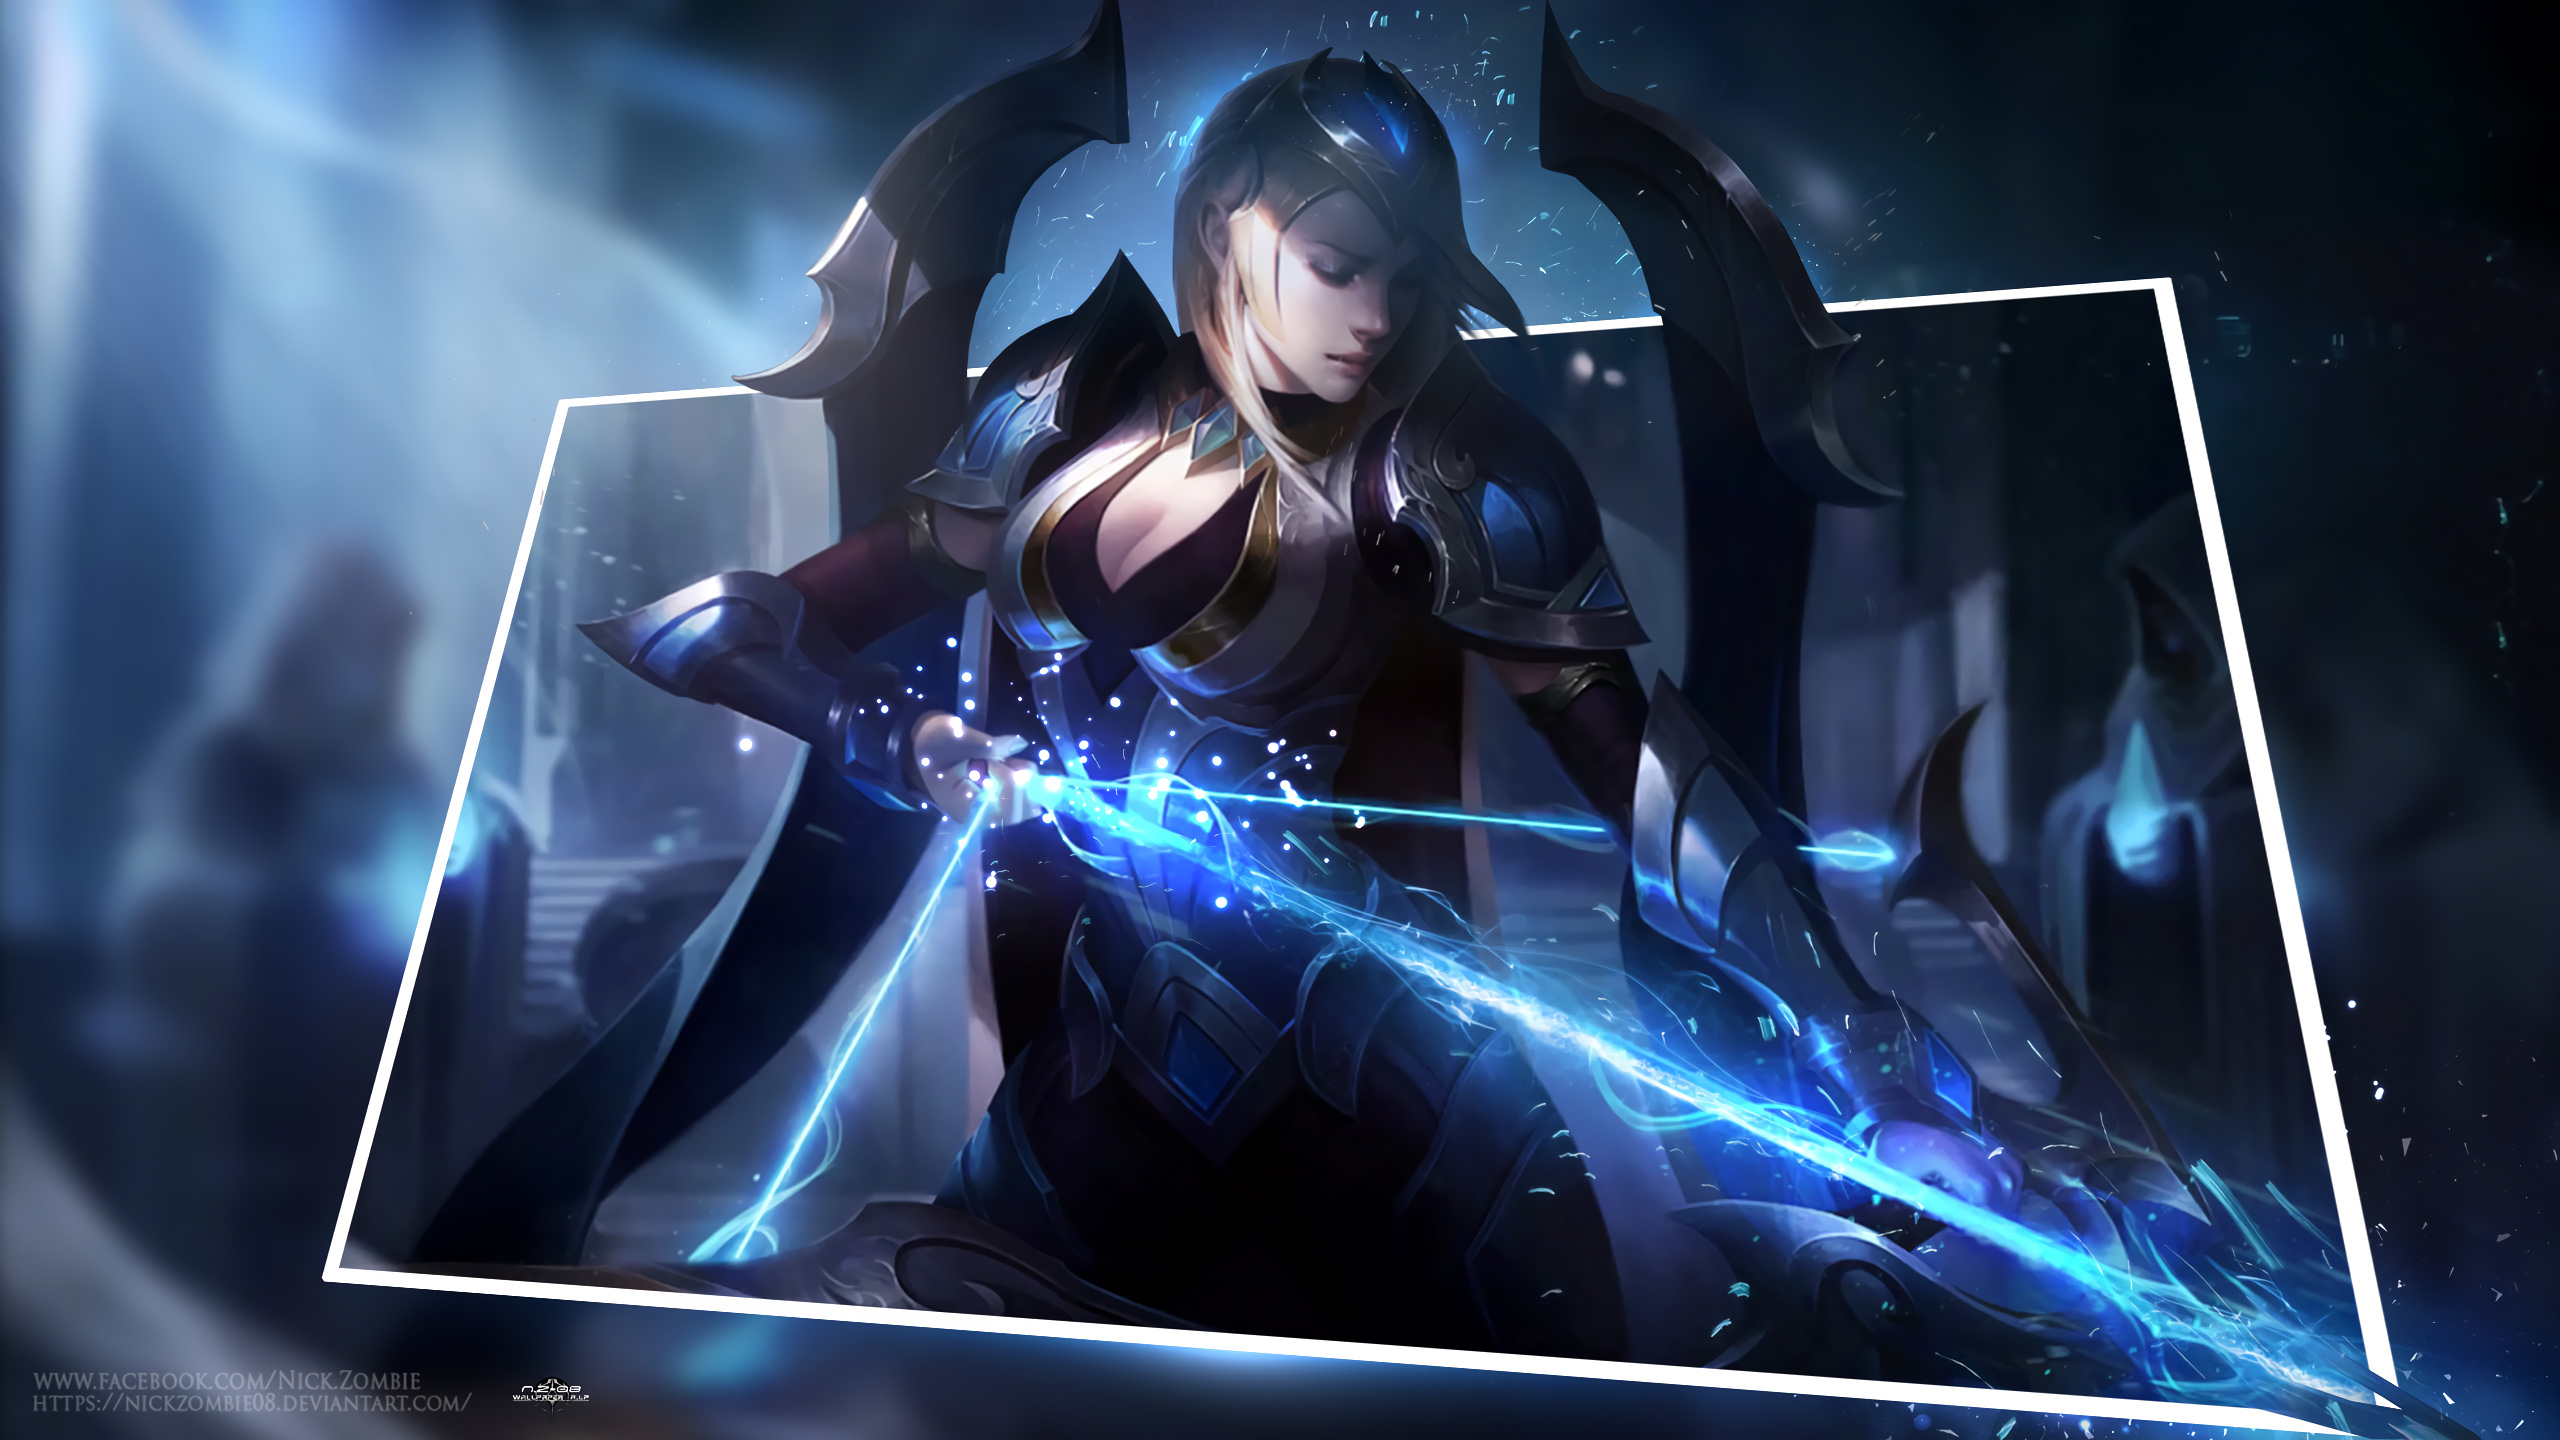 Free Download Ashe Lol Wallpapers Hd Wallpapers Artworks For